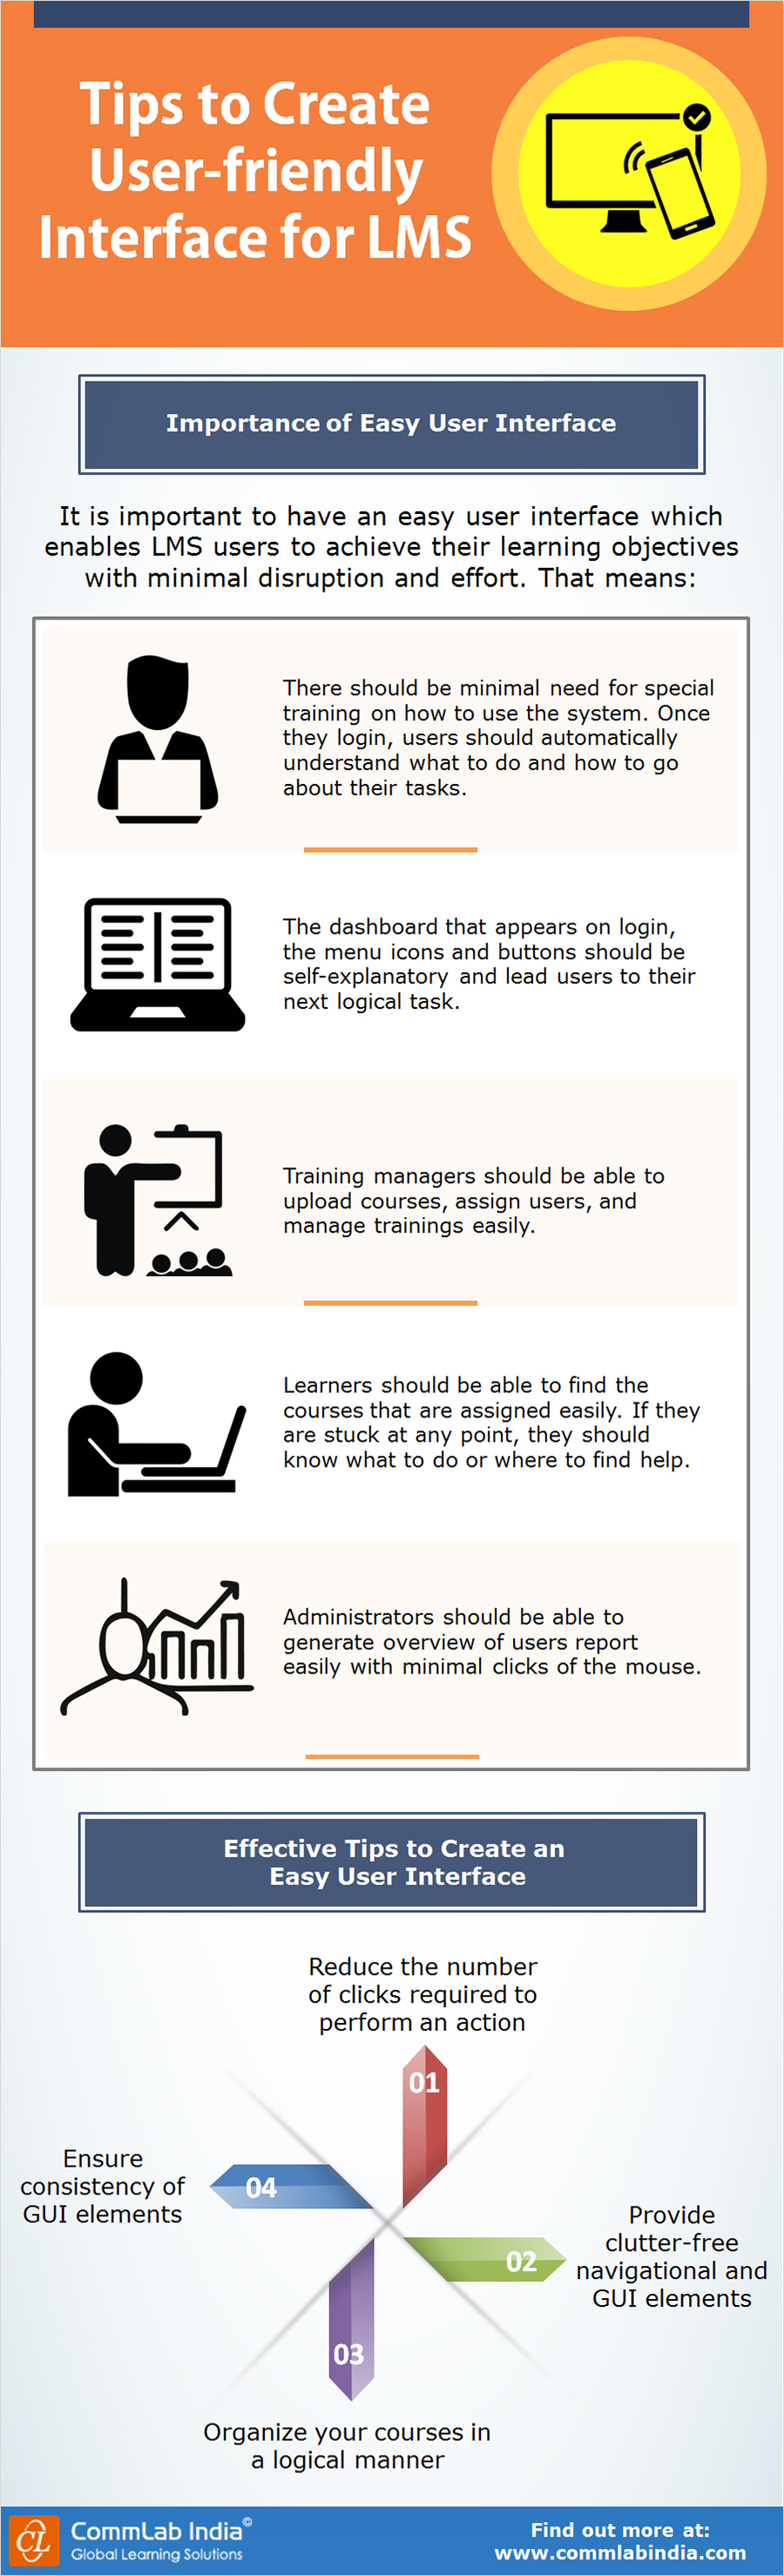 Tips to Create User-friendly Interface for LMS [Infographic]